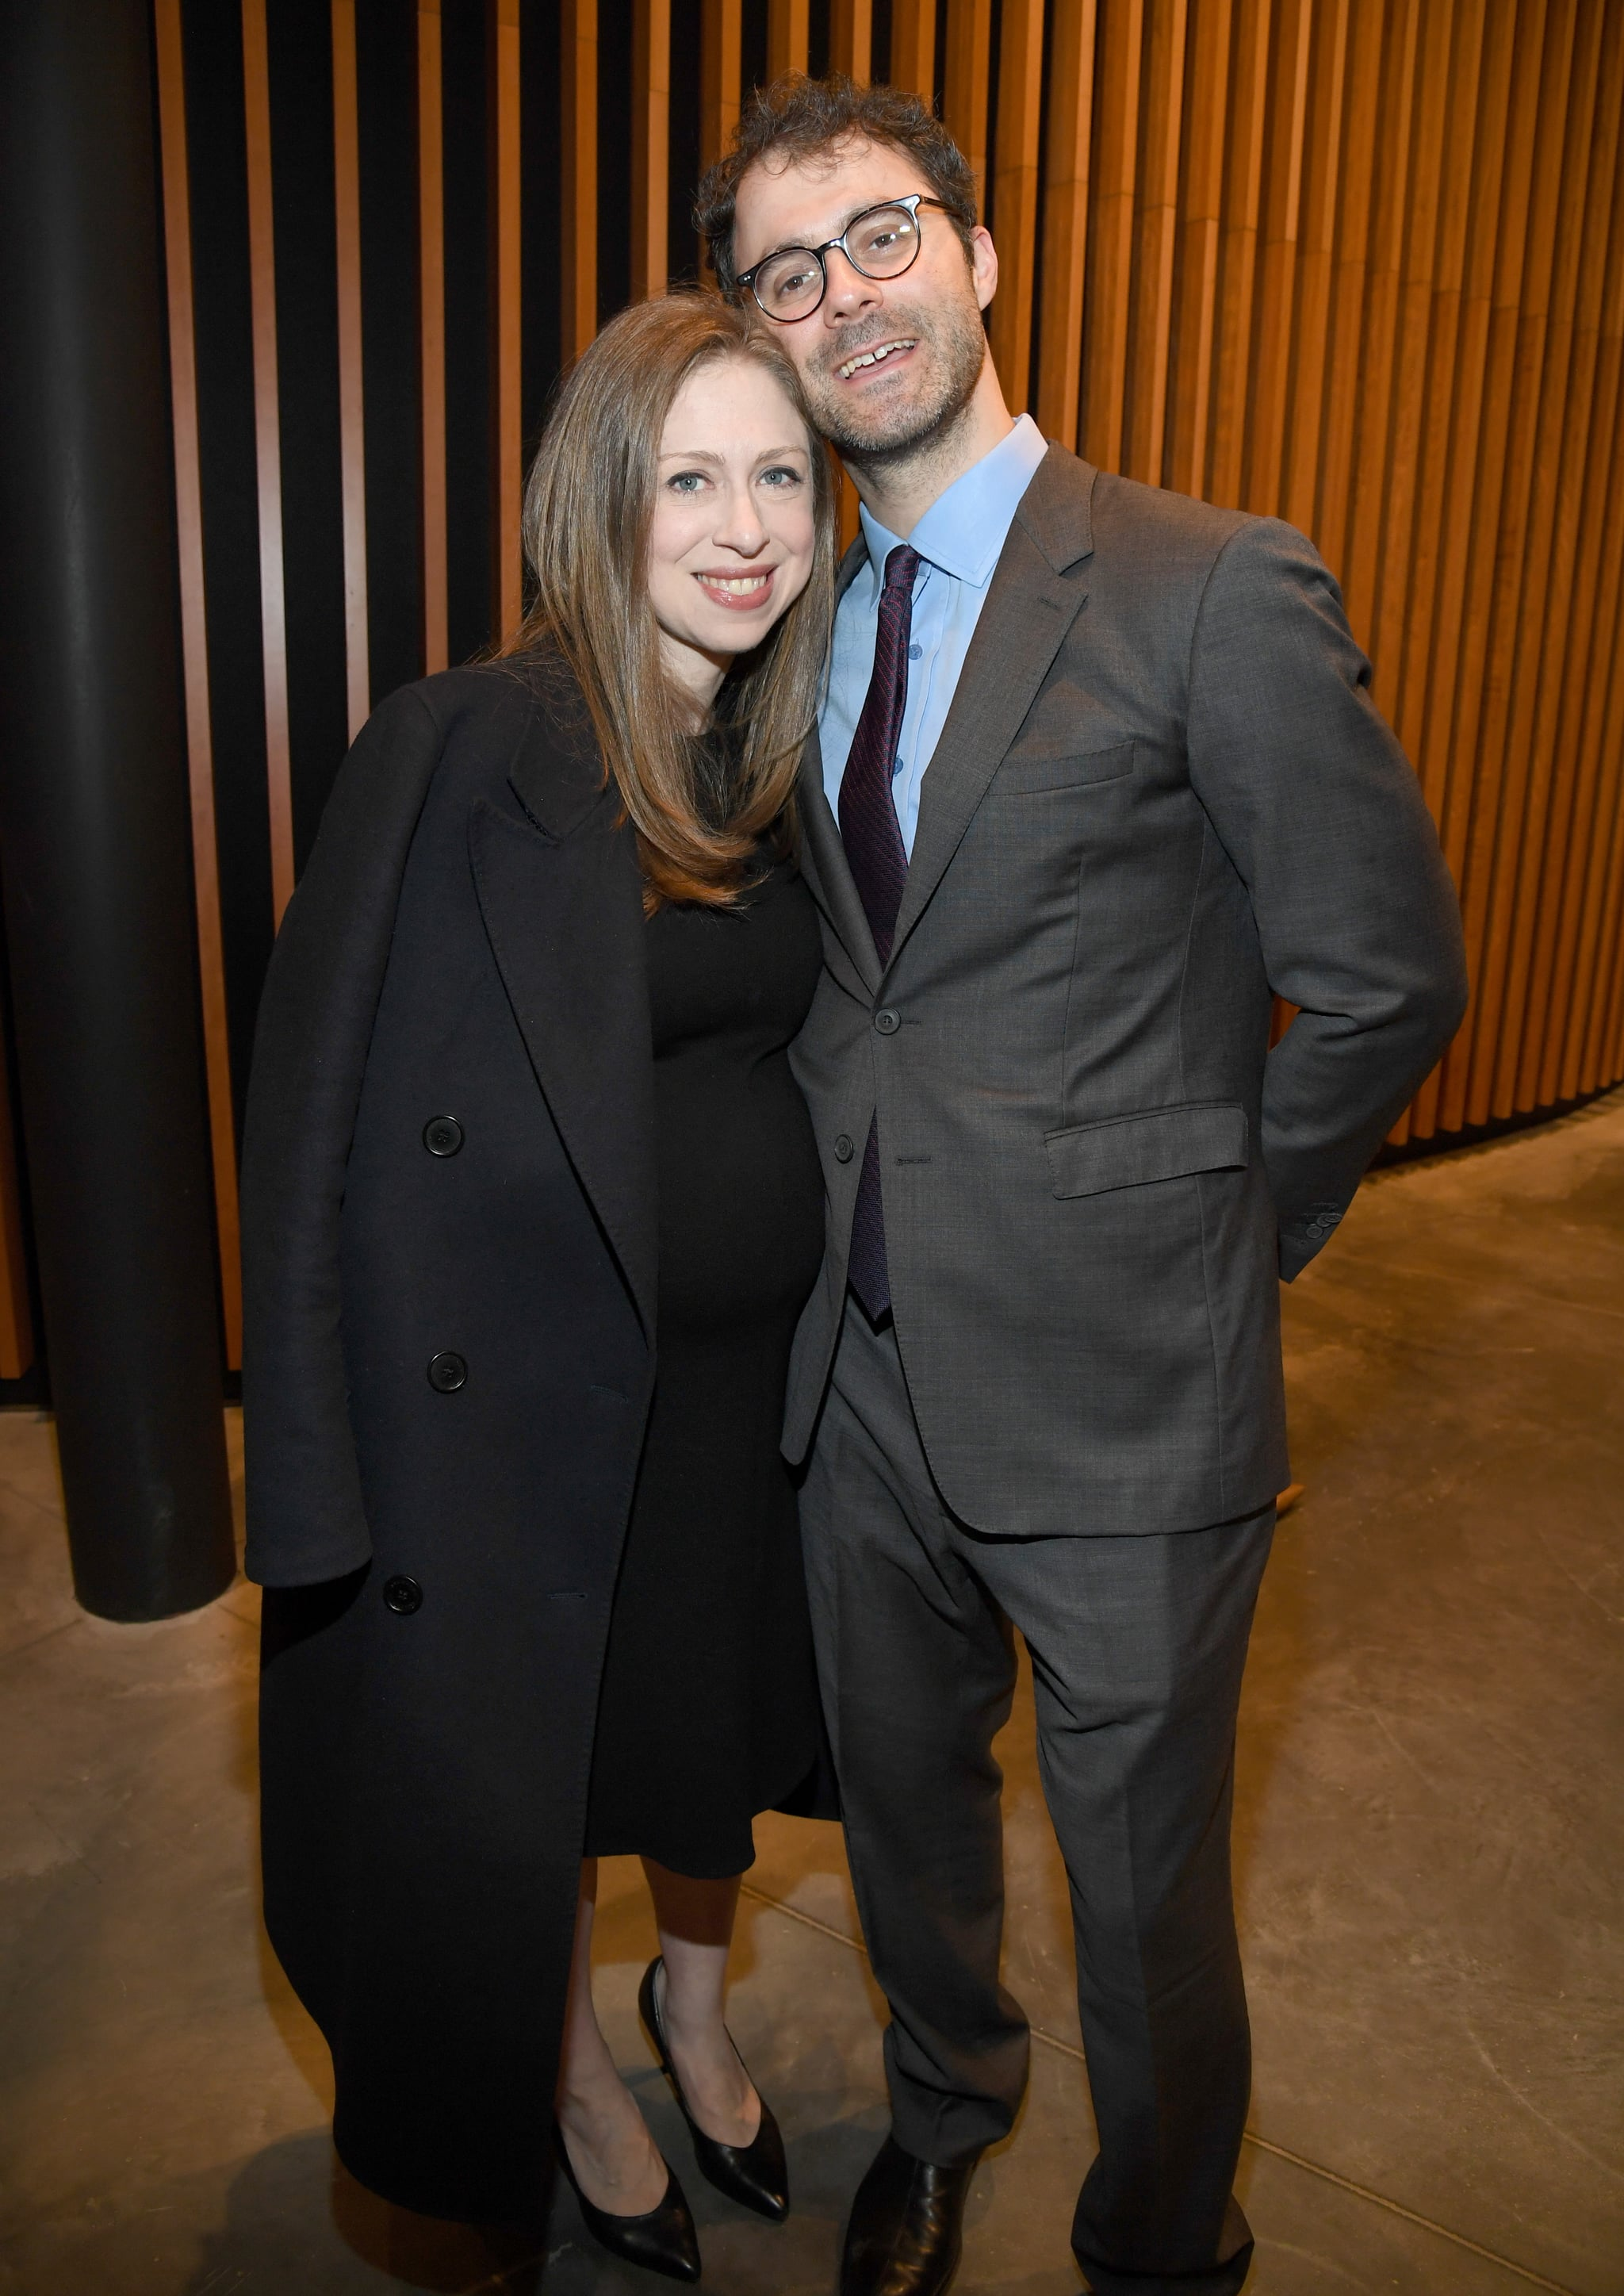 NEW YORK, NEW YORK - MAY 15: Chelsea Clinton and Marc Mezvinsky attend the Statue Of Liberty Museum Opening Celebration on May 15, 2019 at Ellis Island in New York City. (Photo by Kevin Mazur/Getty Images for Statue Of Liberty-Ellis Island Foundation)